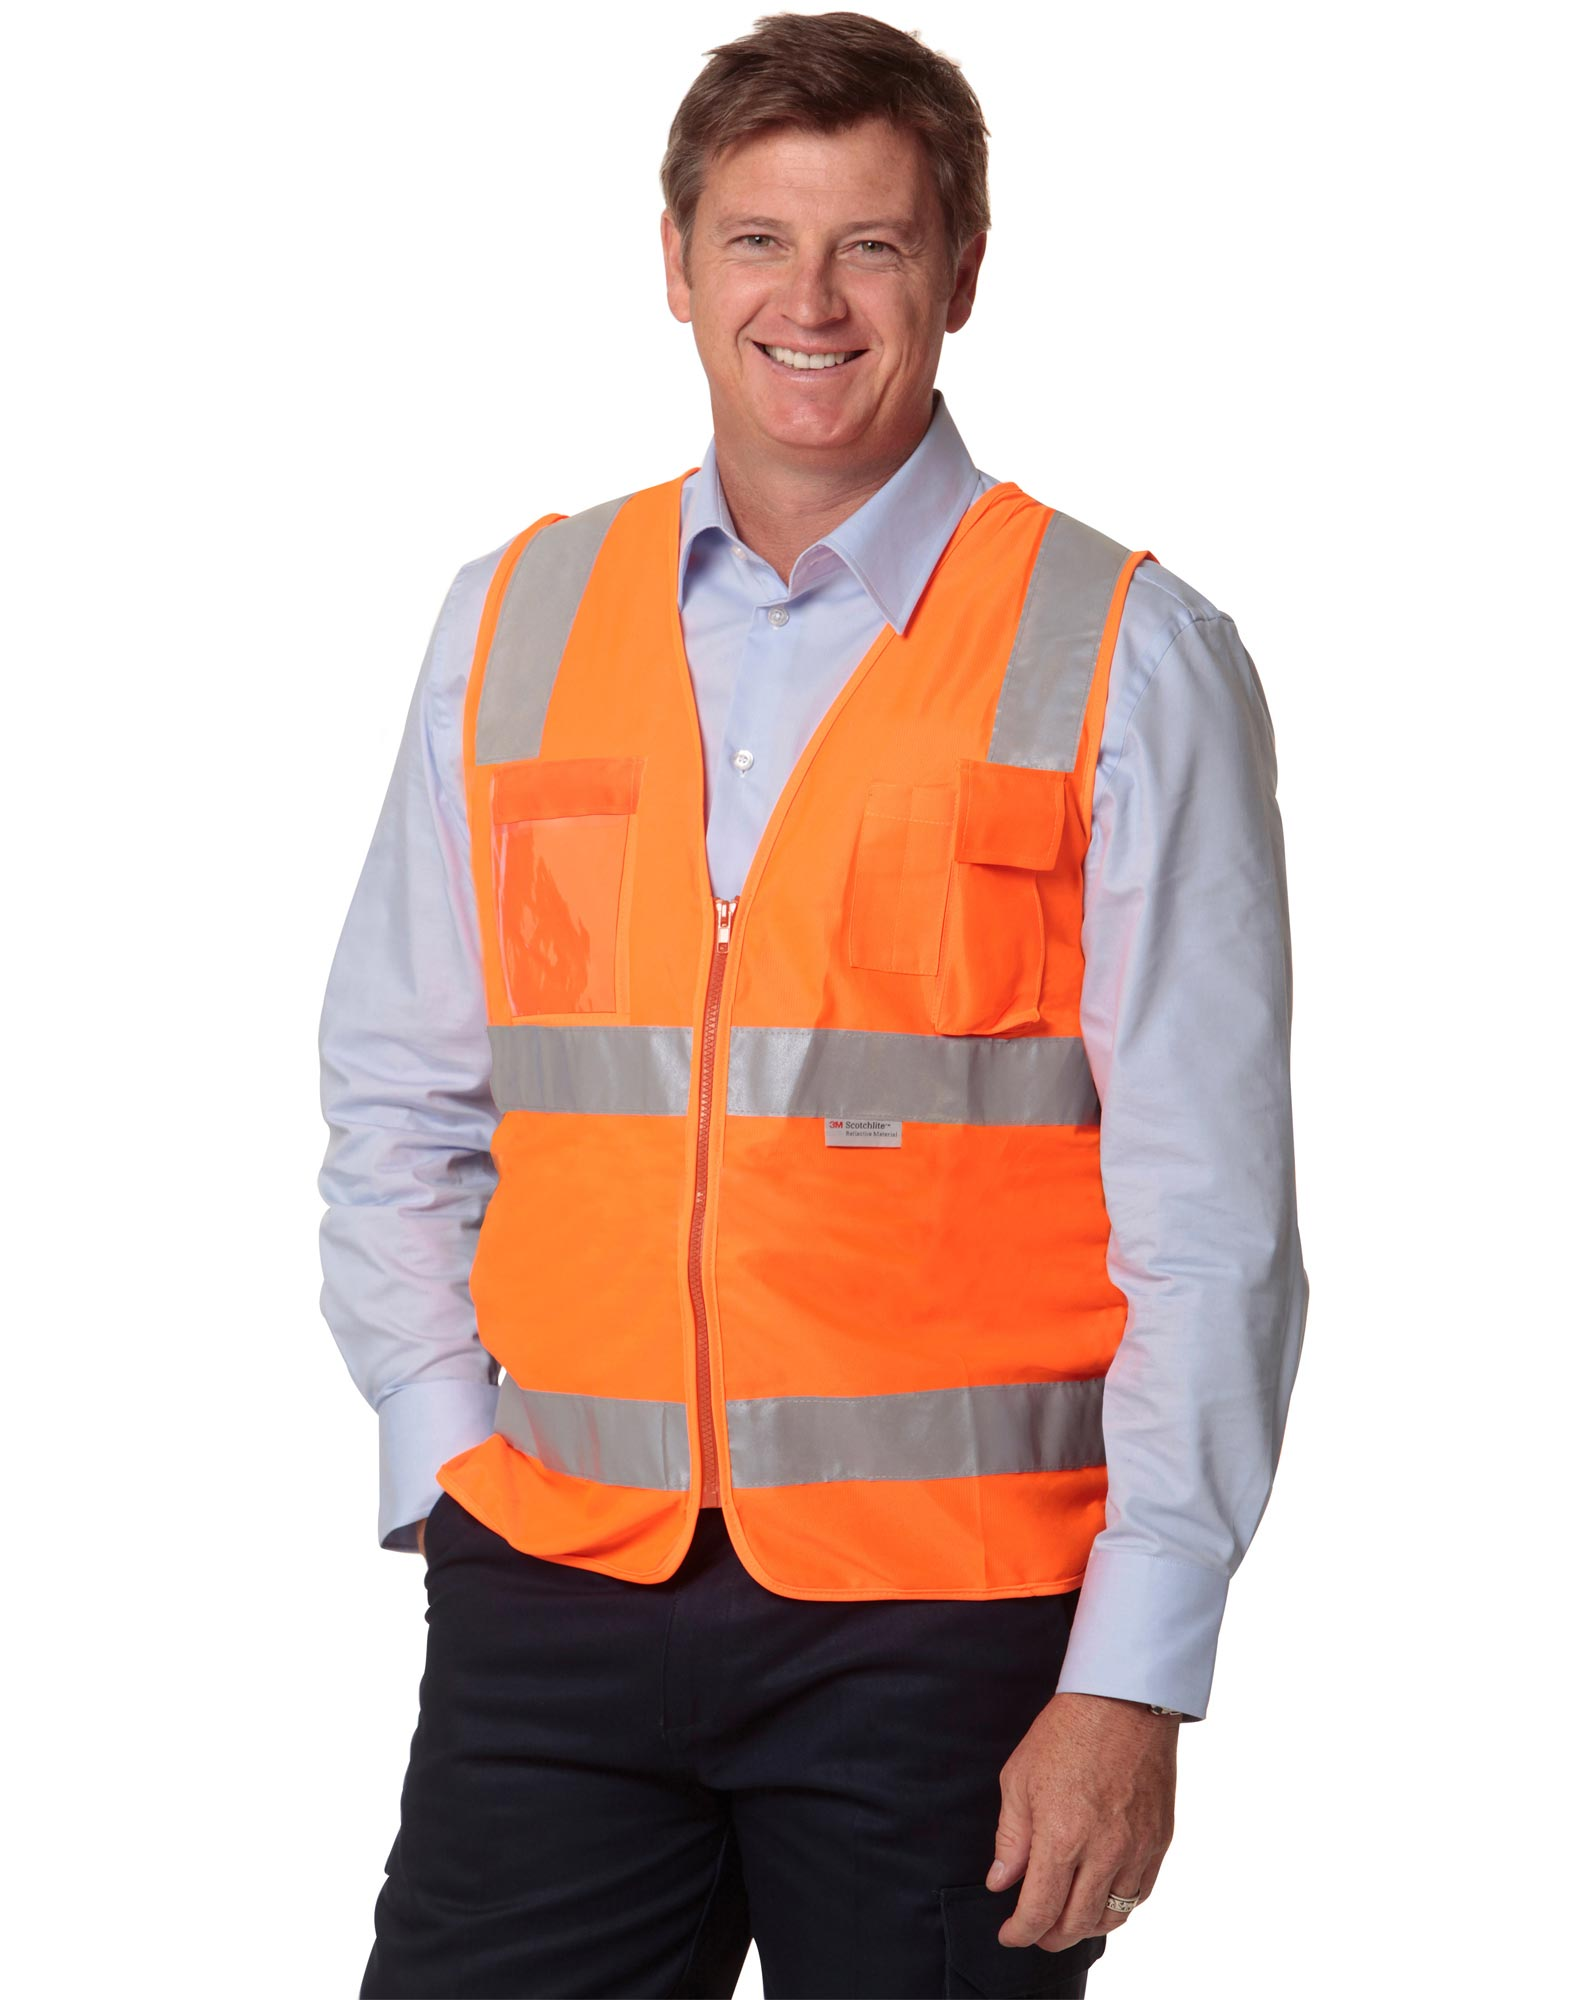 WinningSpirit SW42-HI-VIS SAFETY VEST WITH ID POCKET & 3M TAPES